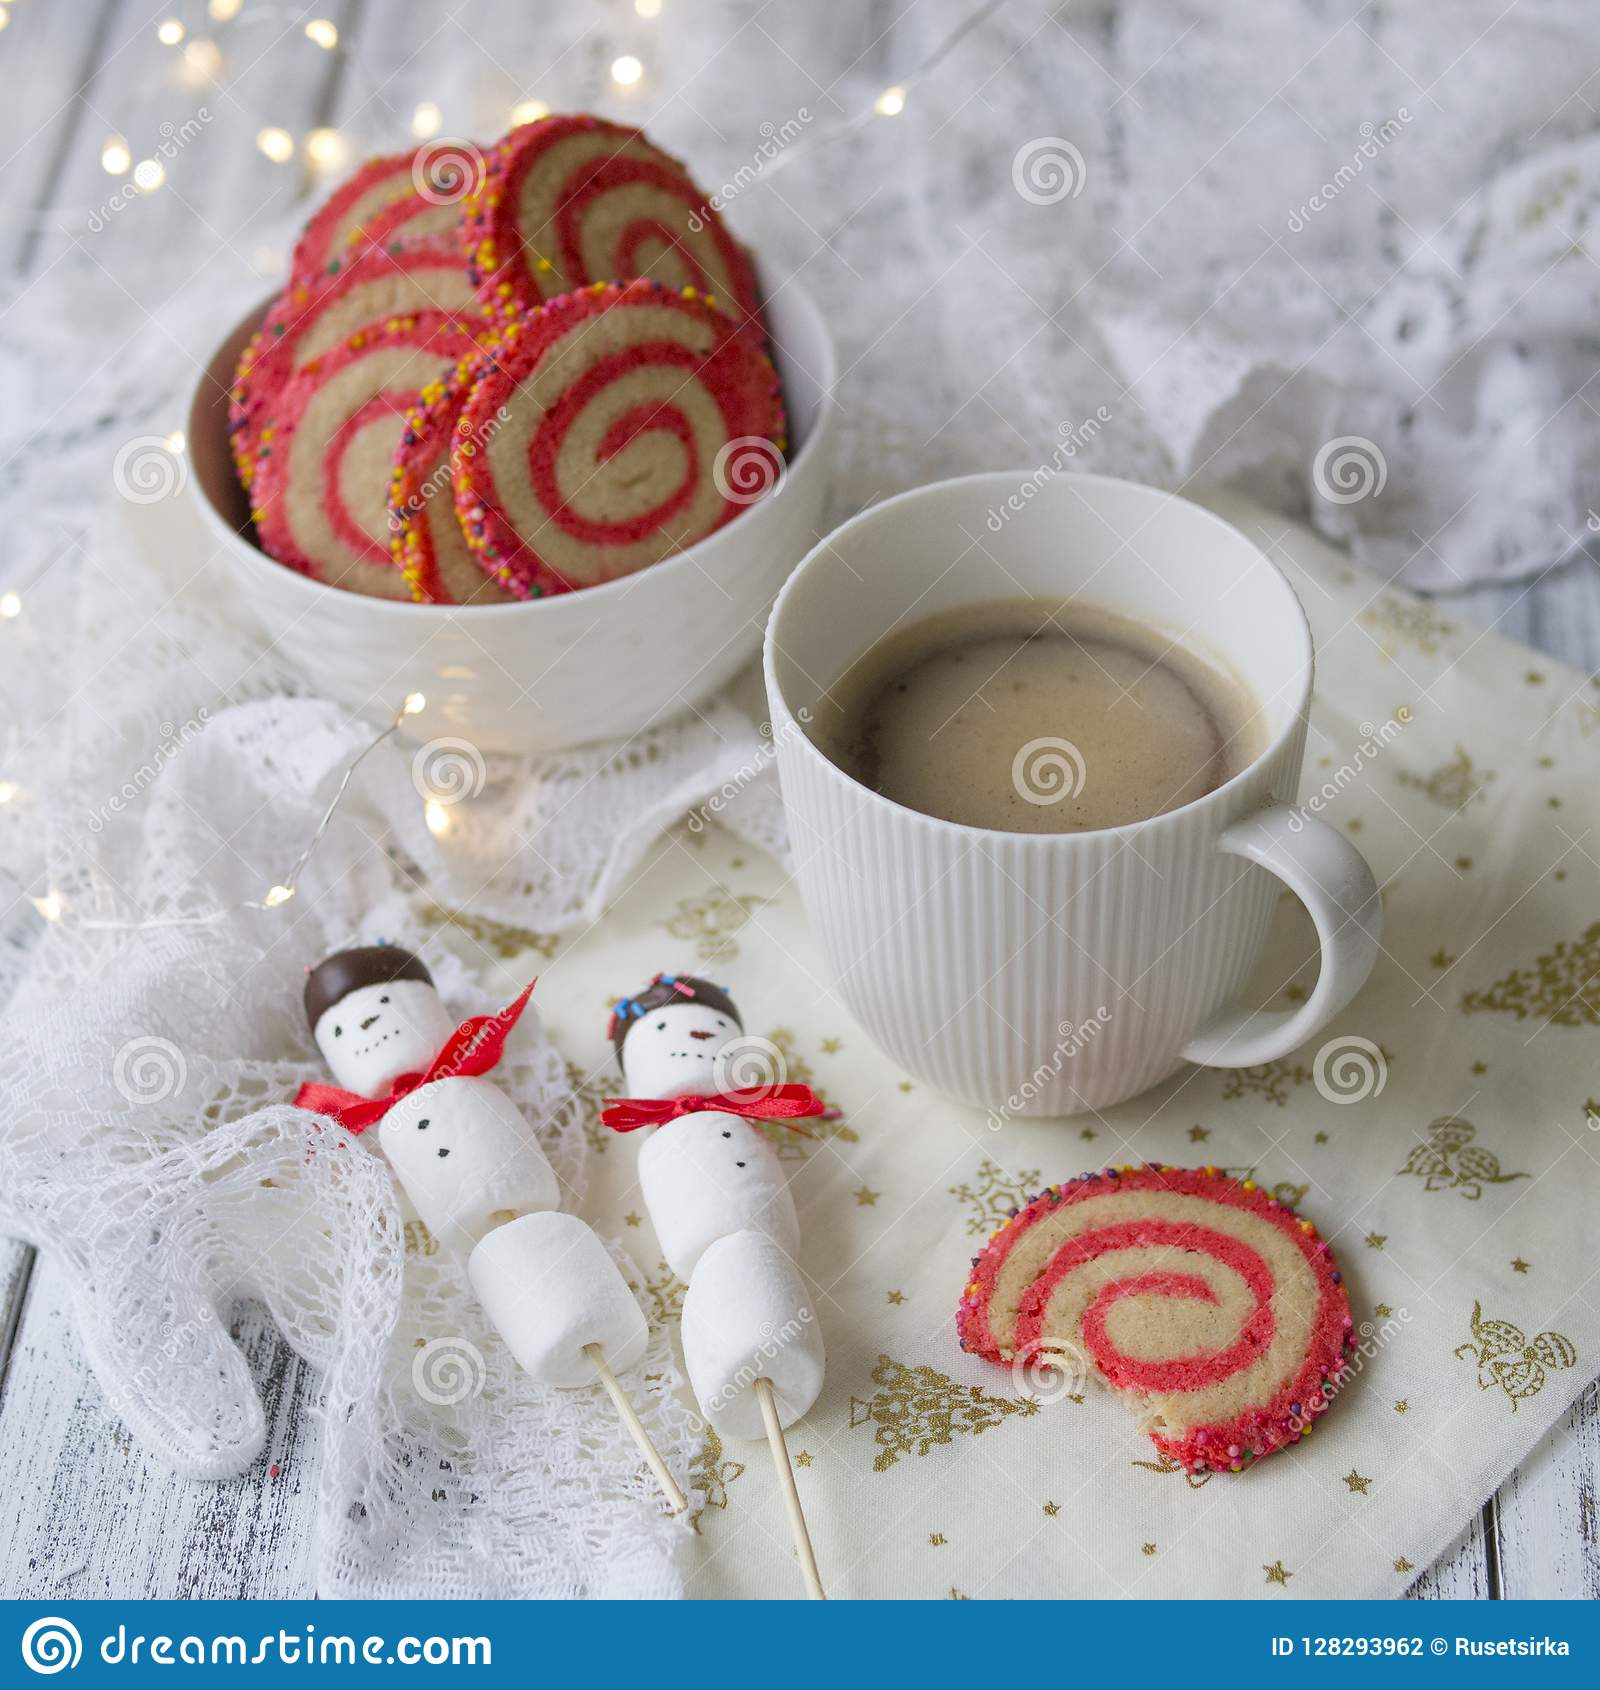 Cup Of Coffee With A Marshmallow Snowman And Cookies In The Form Of